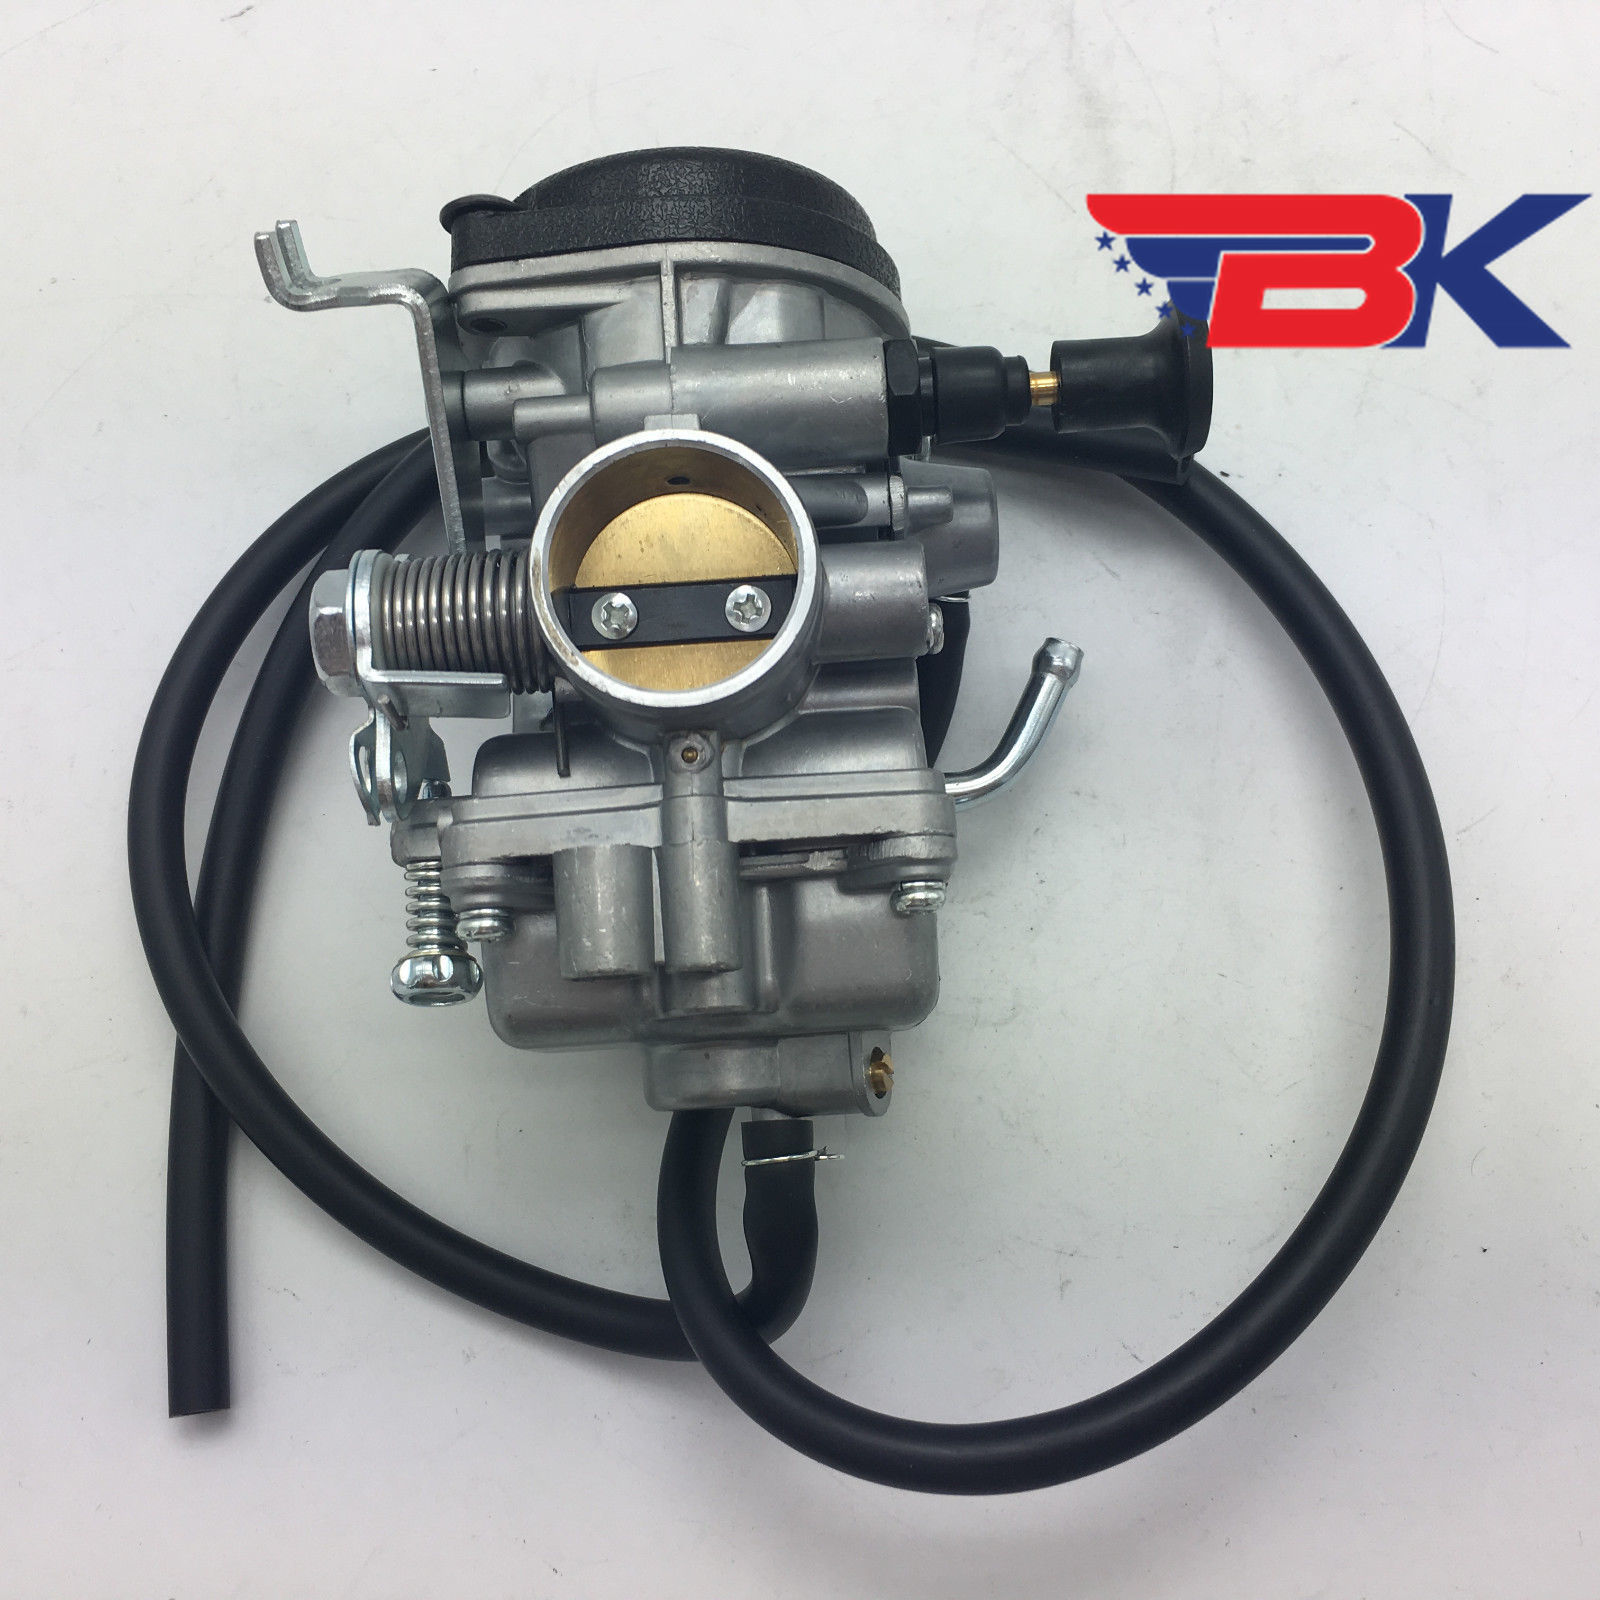 Atv,rv,boat & Other Vehicle Carburettor For Jianshe 125 Yamaha Ybr125 Gs125 En125 125cc Motorcycle Atv Carb Soft And Light Automobiles & Motorcycles